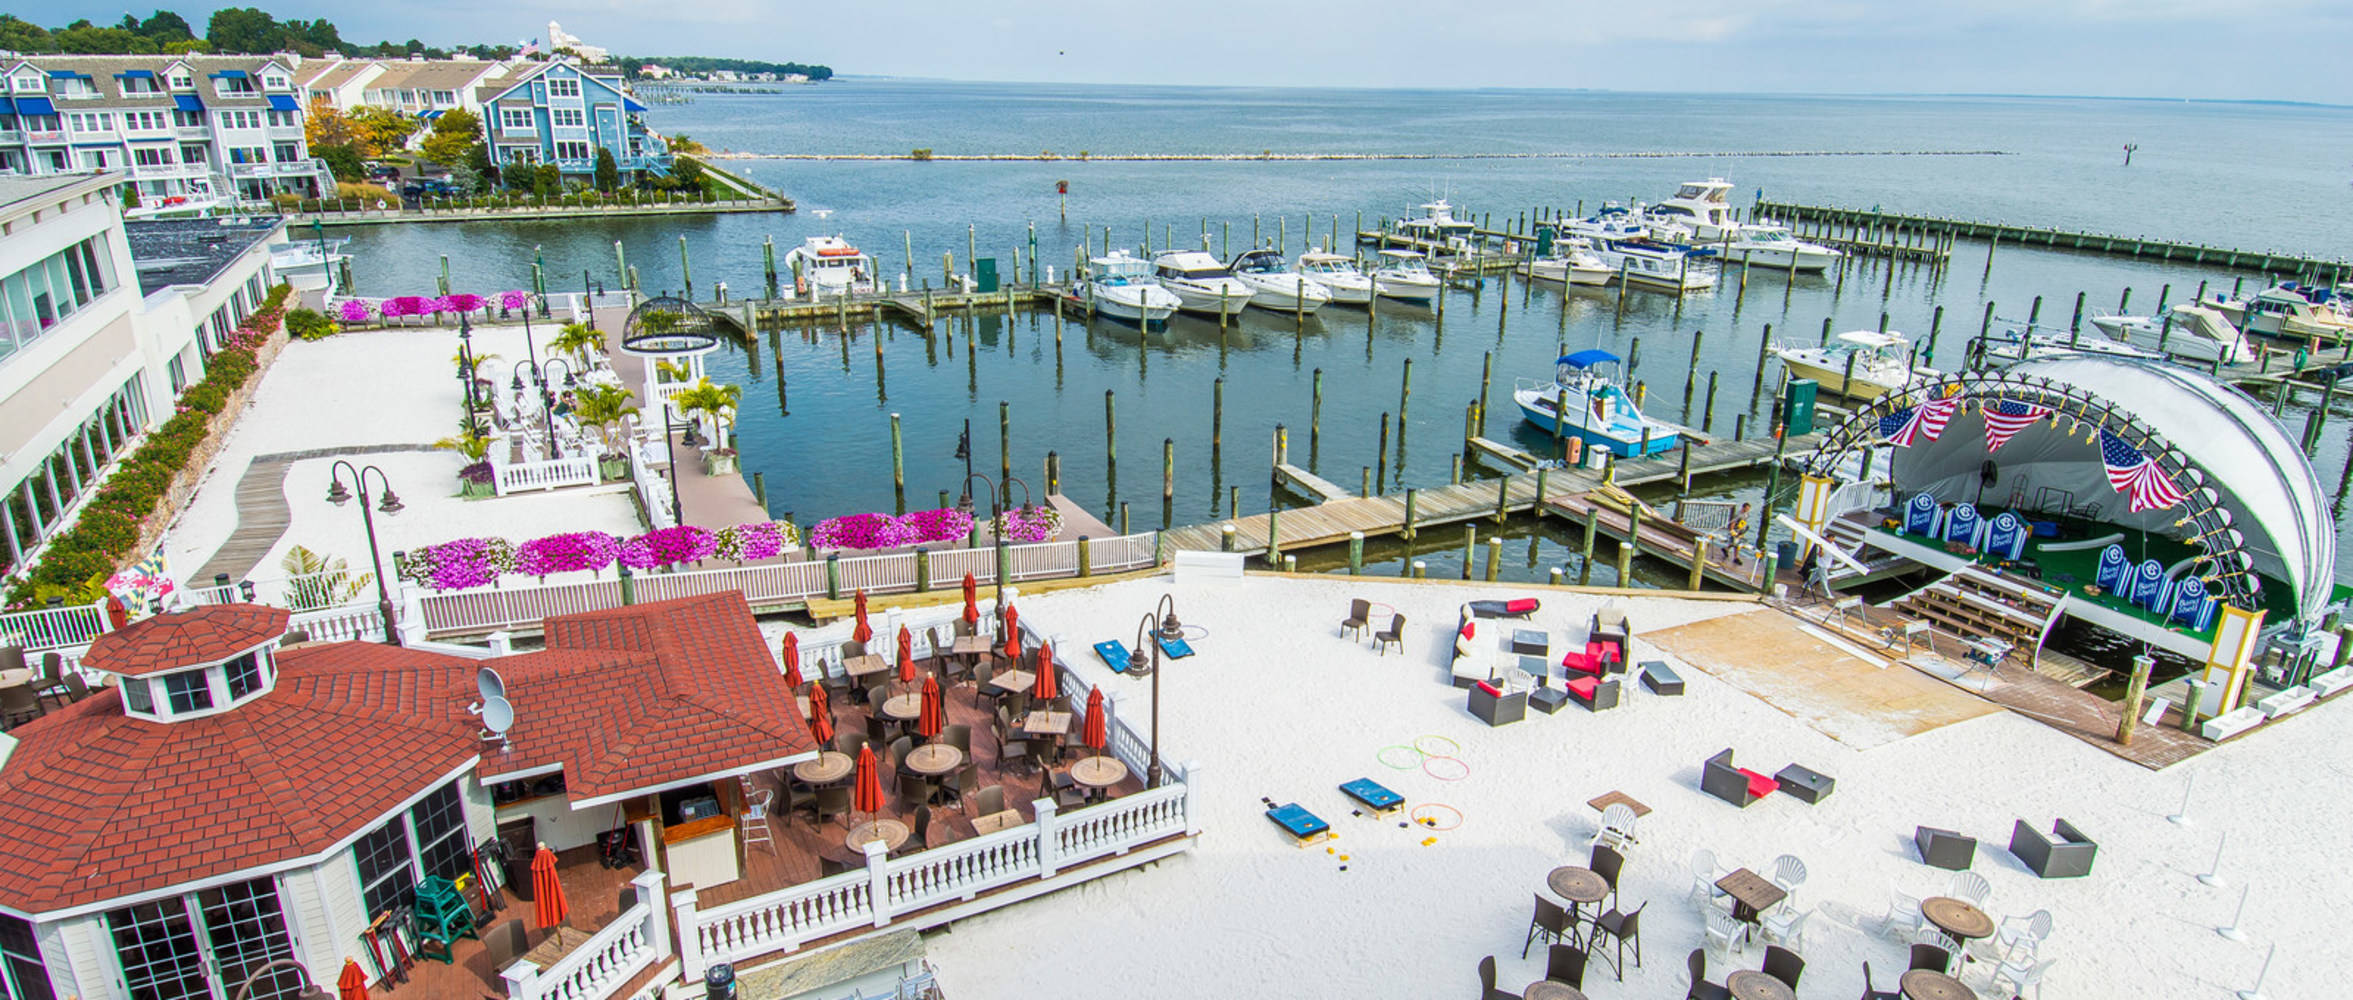 chesapeake beach Family-friendly destination water park featuring pools, slides & waterfalls, plus private cabana rentals in chesapeake beach maryland time to splish and splash.